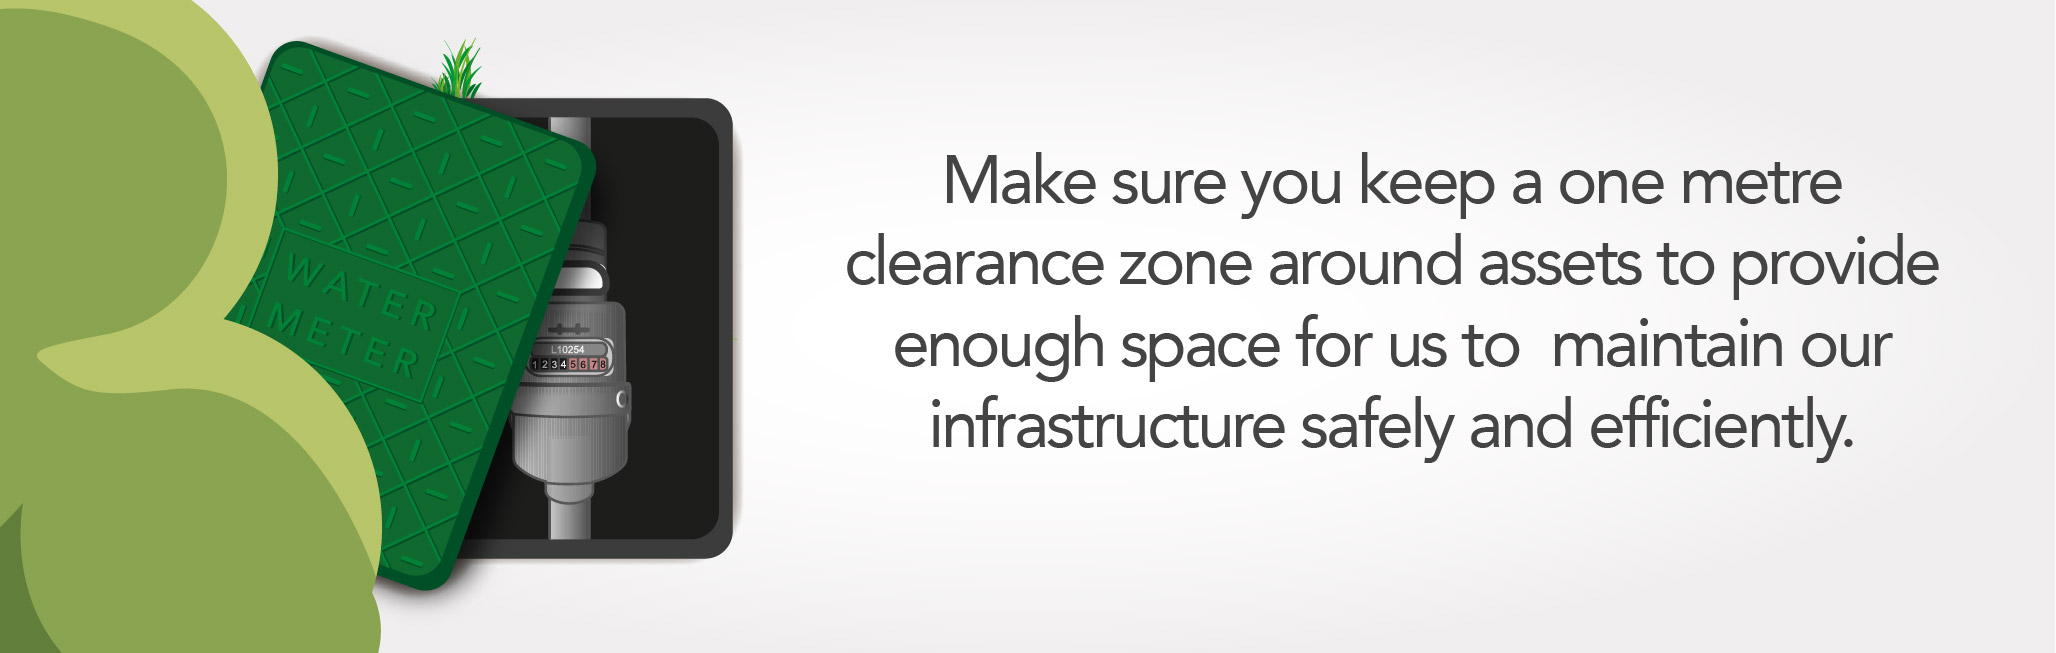 Make sure you keep a one metre clearance zone around assets to provide enough space for us to  maintain our infrastructure safely and efficiently.